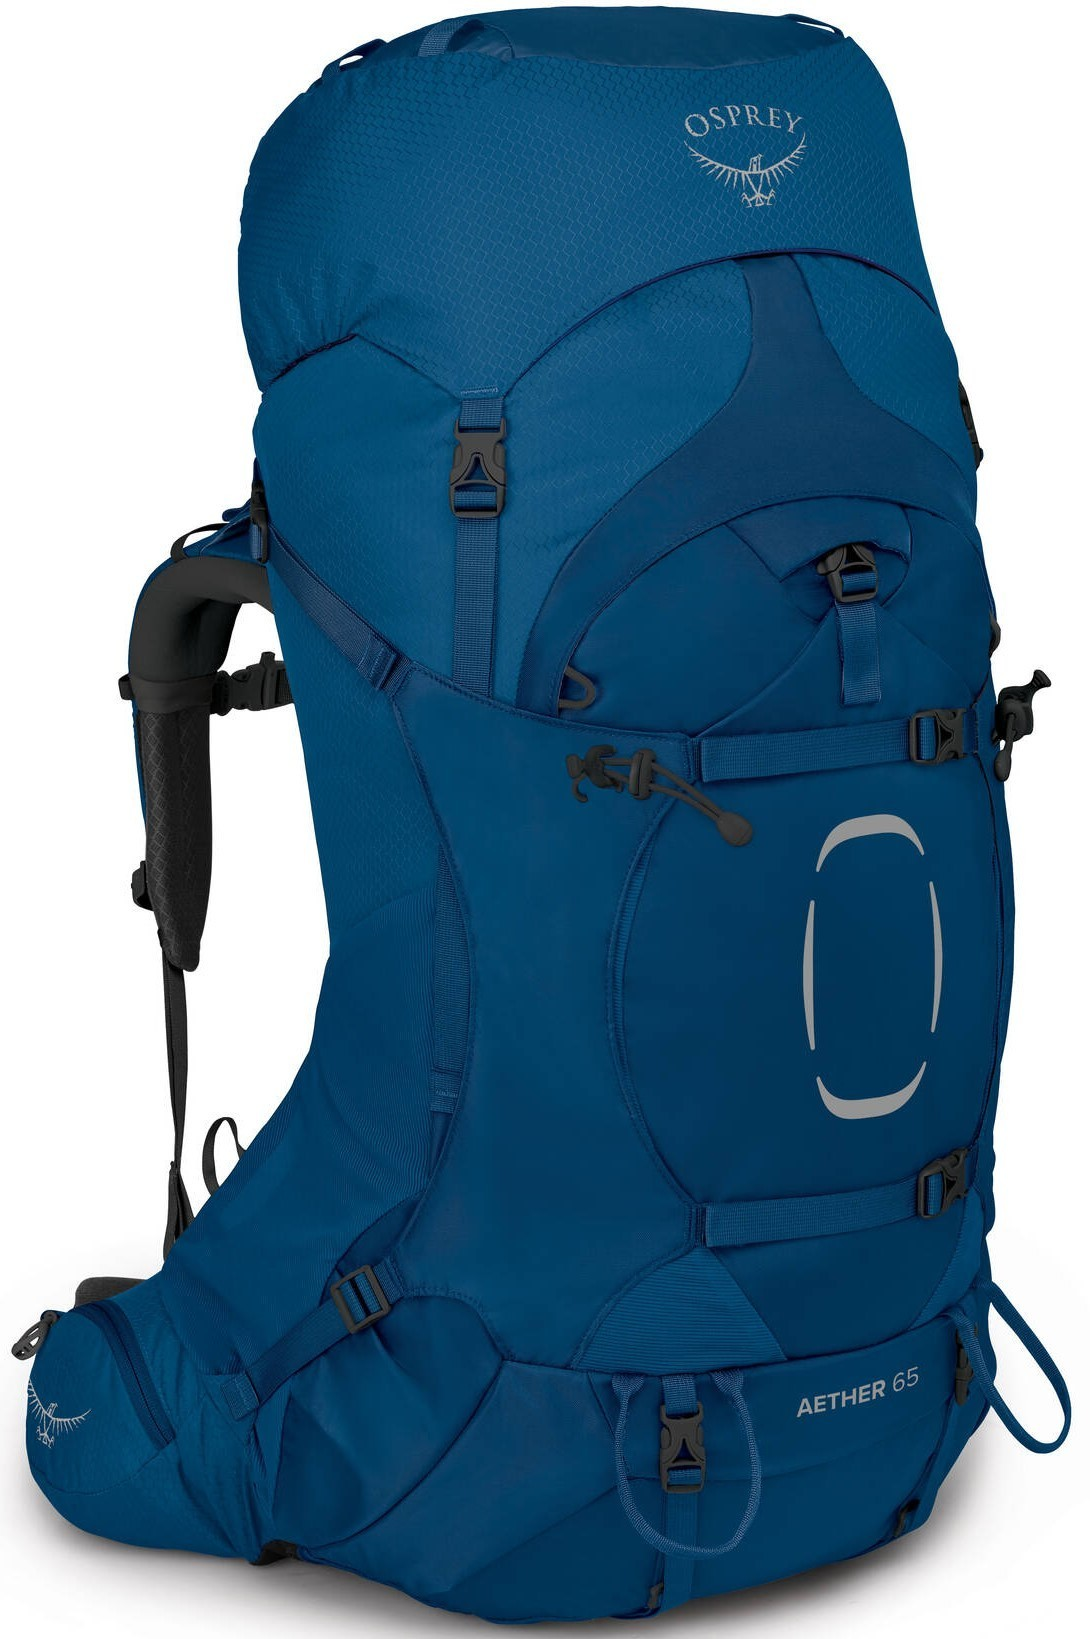 Aether AG Рюкзак Osprey Aether 65, Deep Water Blue Aether_65_S21_Side_Deep_Water_Blue_web.jpg